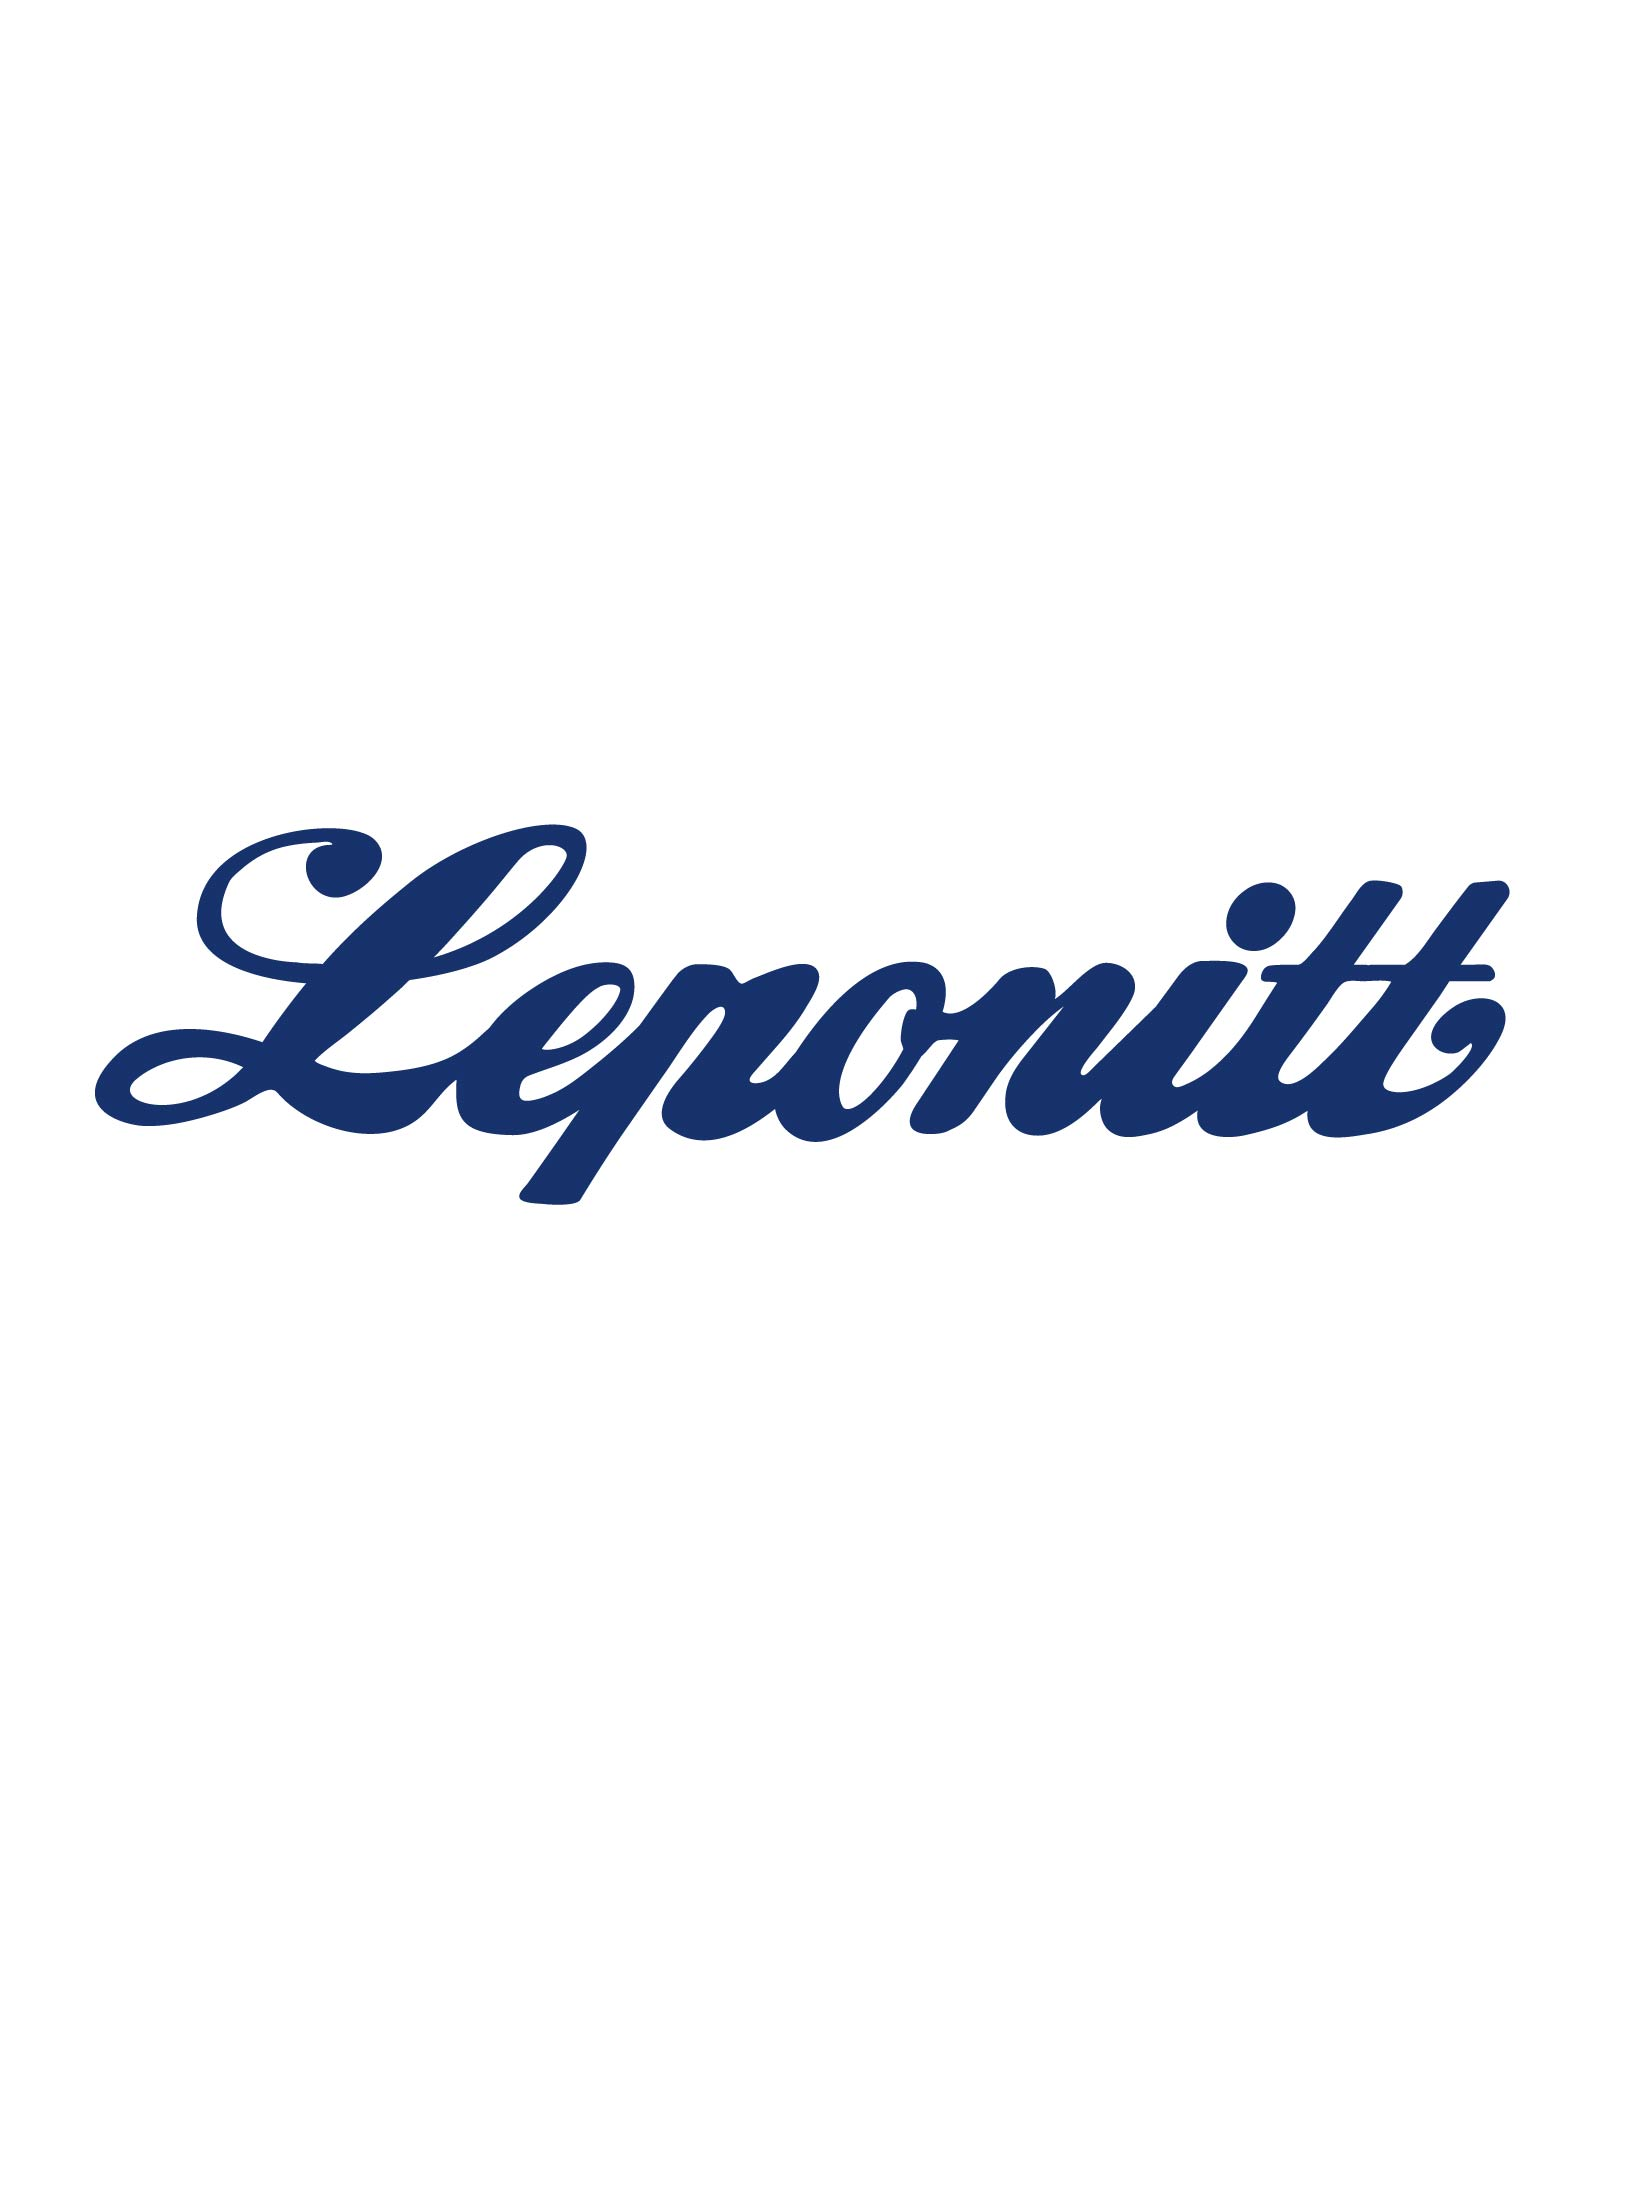 LEPONITT     Leponitt is San Jung's Main Product. This product is exclusively manufactured for our company. We also sell retail versions of these products but on a limited scale. We primarily distribute these products worldwide. These are the finest glass tools in the world. Period.